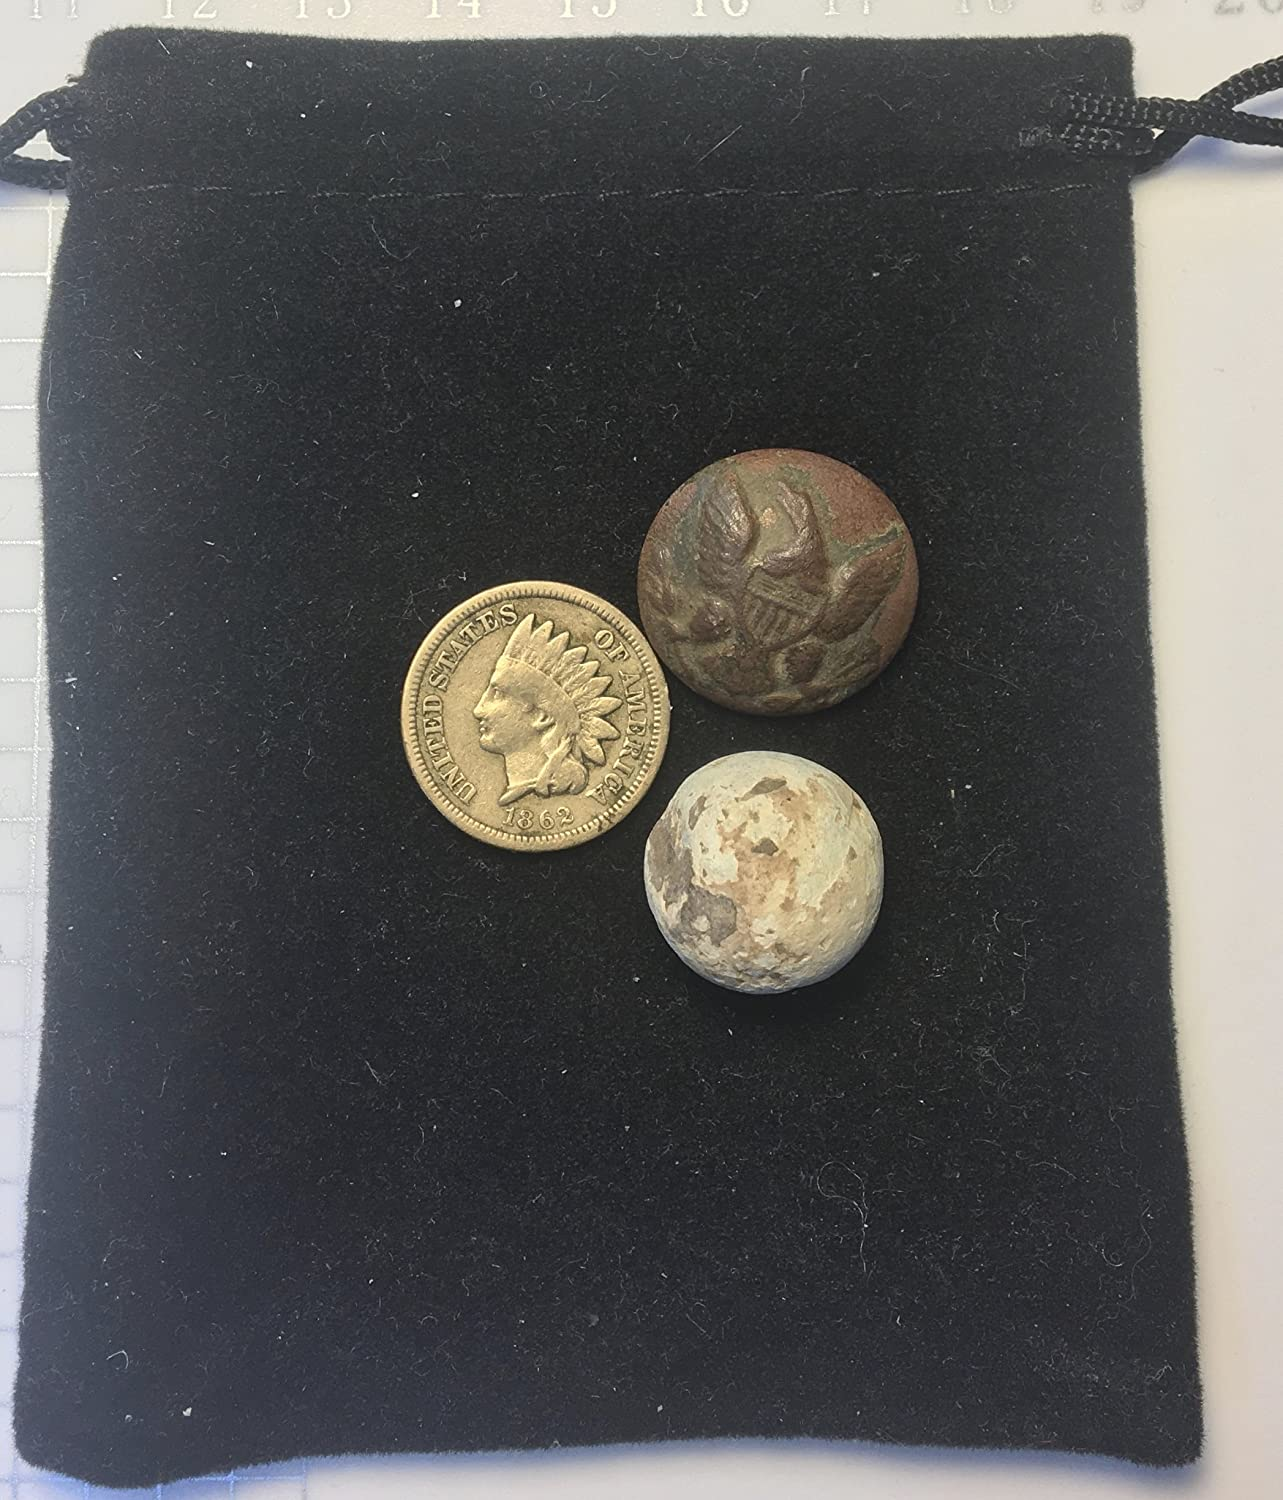 1865 Indian Head Civil war era Musket Ball and Uniform Button Comes In Gift Bag Artifacts Cent AG-G 1861 P